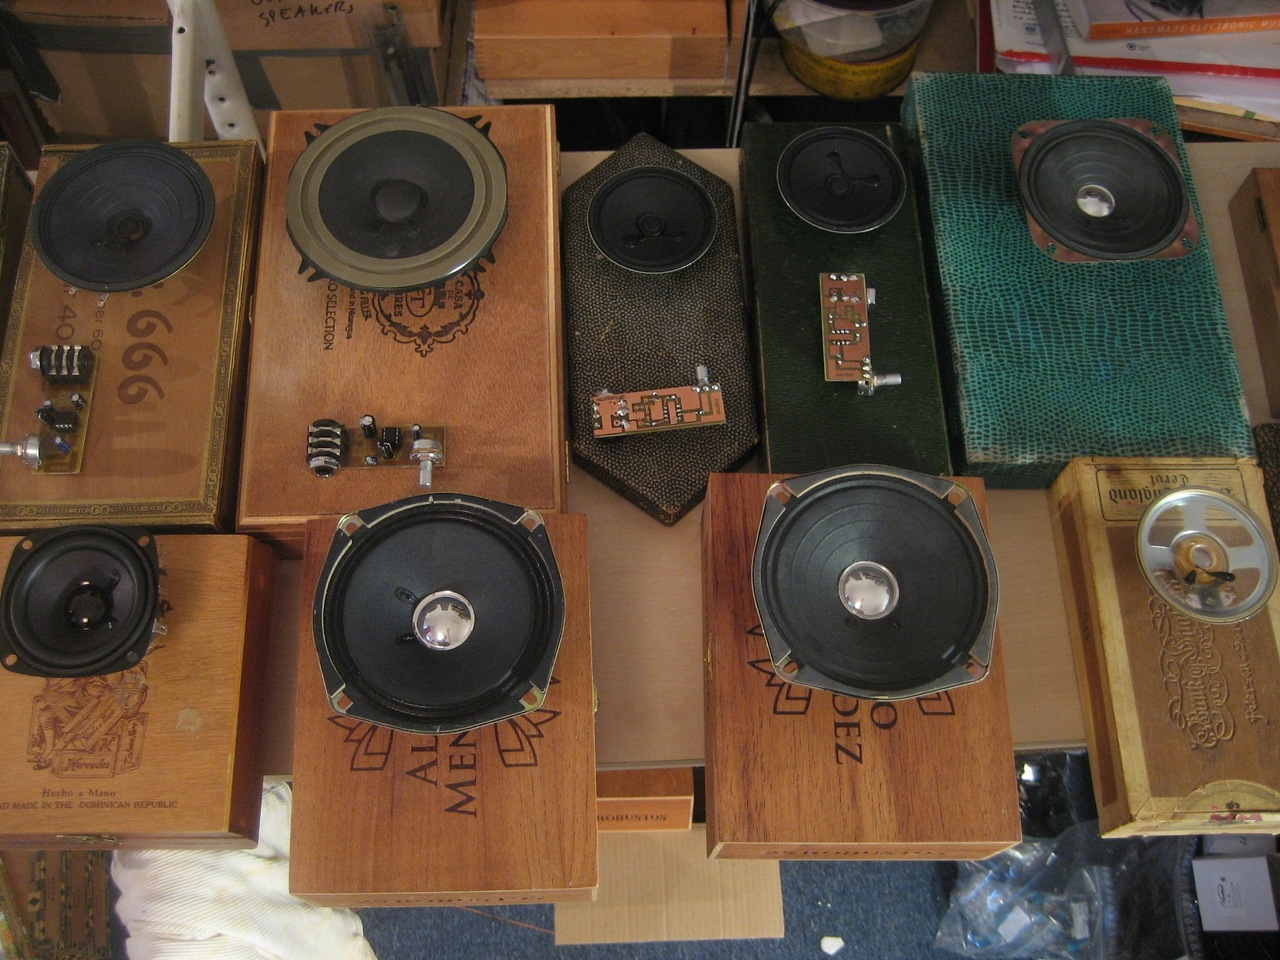 Solstice SoundBoxes for sale